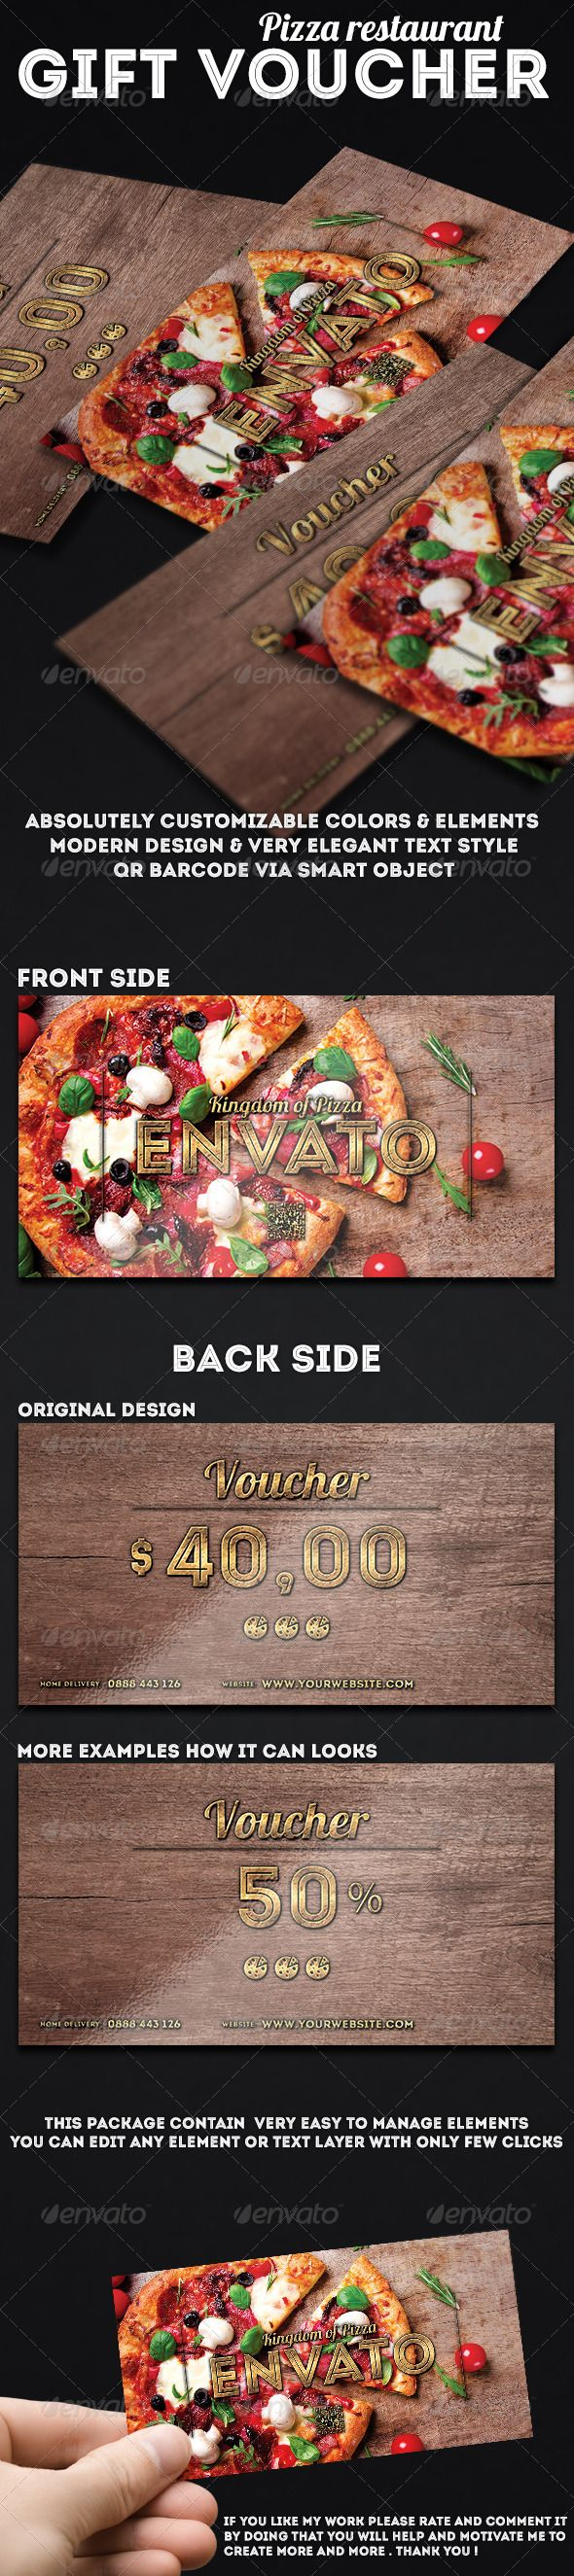 #Gift #voucher for pizza store - Cards & Invites #Print #Templates Download here: https://graphicriver.net/item/gift-voucher-for-pizza-store/7423034?ref=alena994